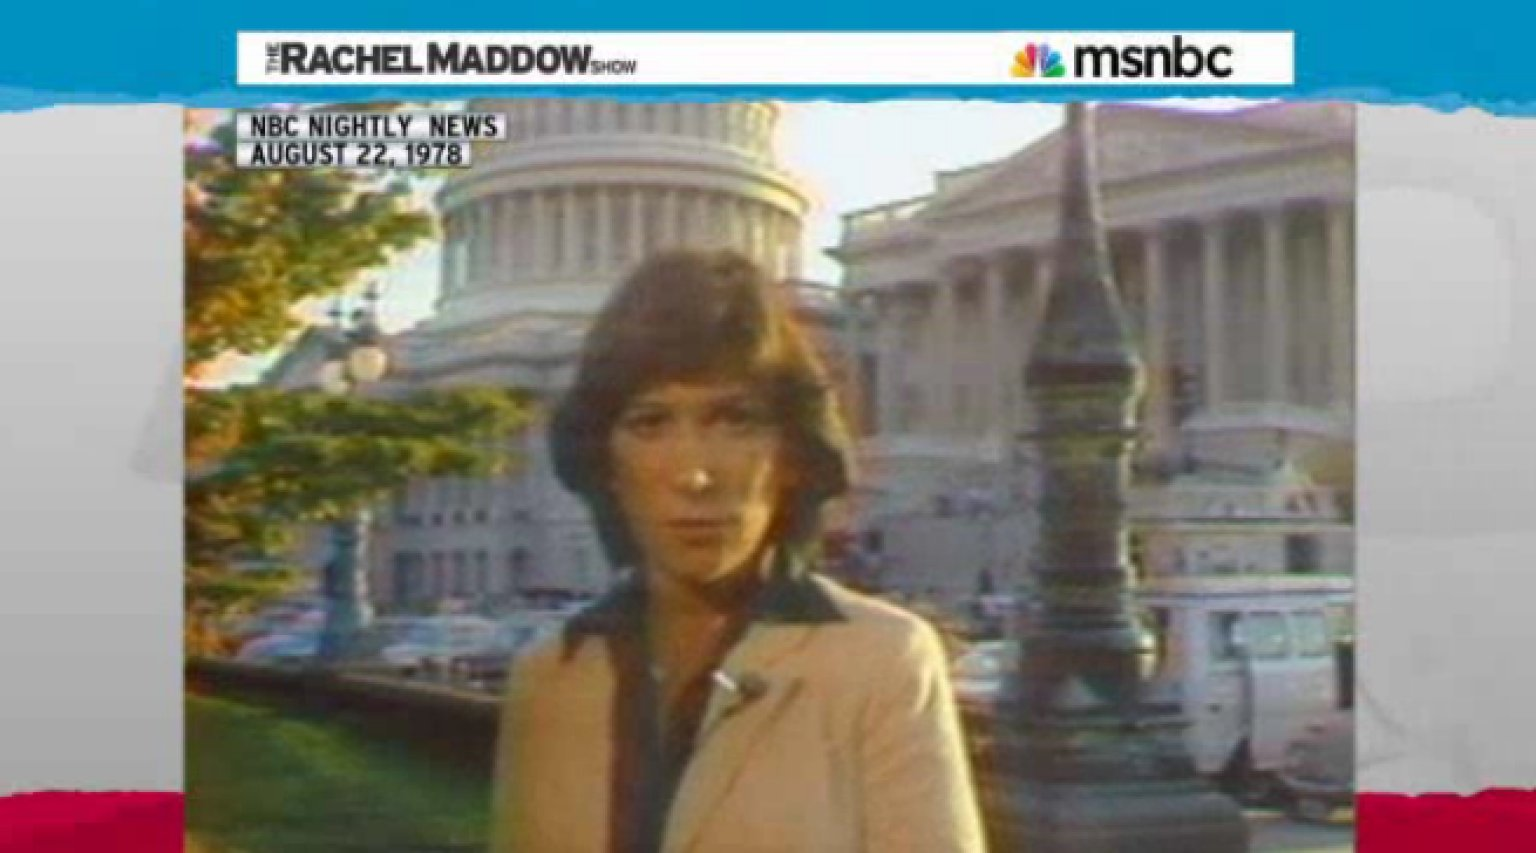 Andrea Mitchell's First Appearance On NBC News And More ...